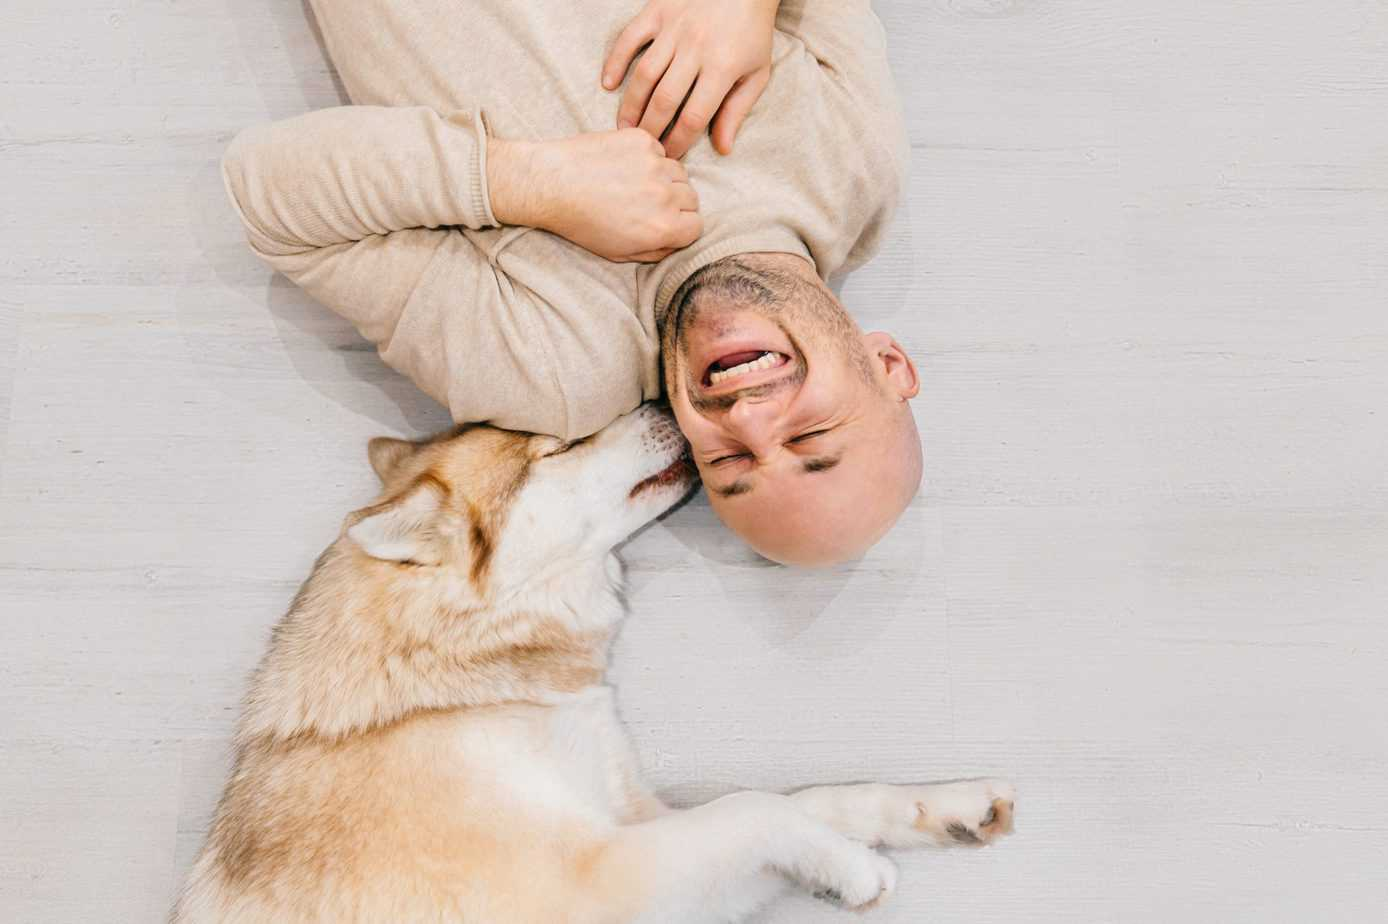 Husky kisses owner. Use these five healthy dog care tips to ensure your pup lives a long and happy life.